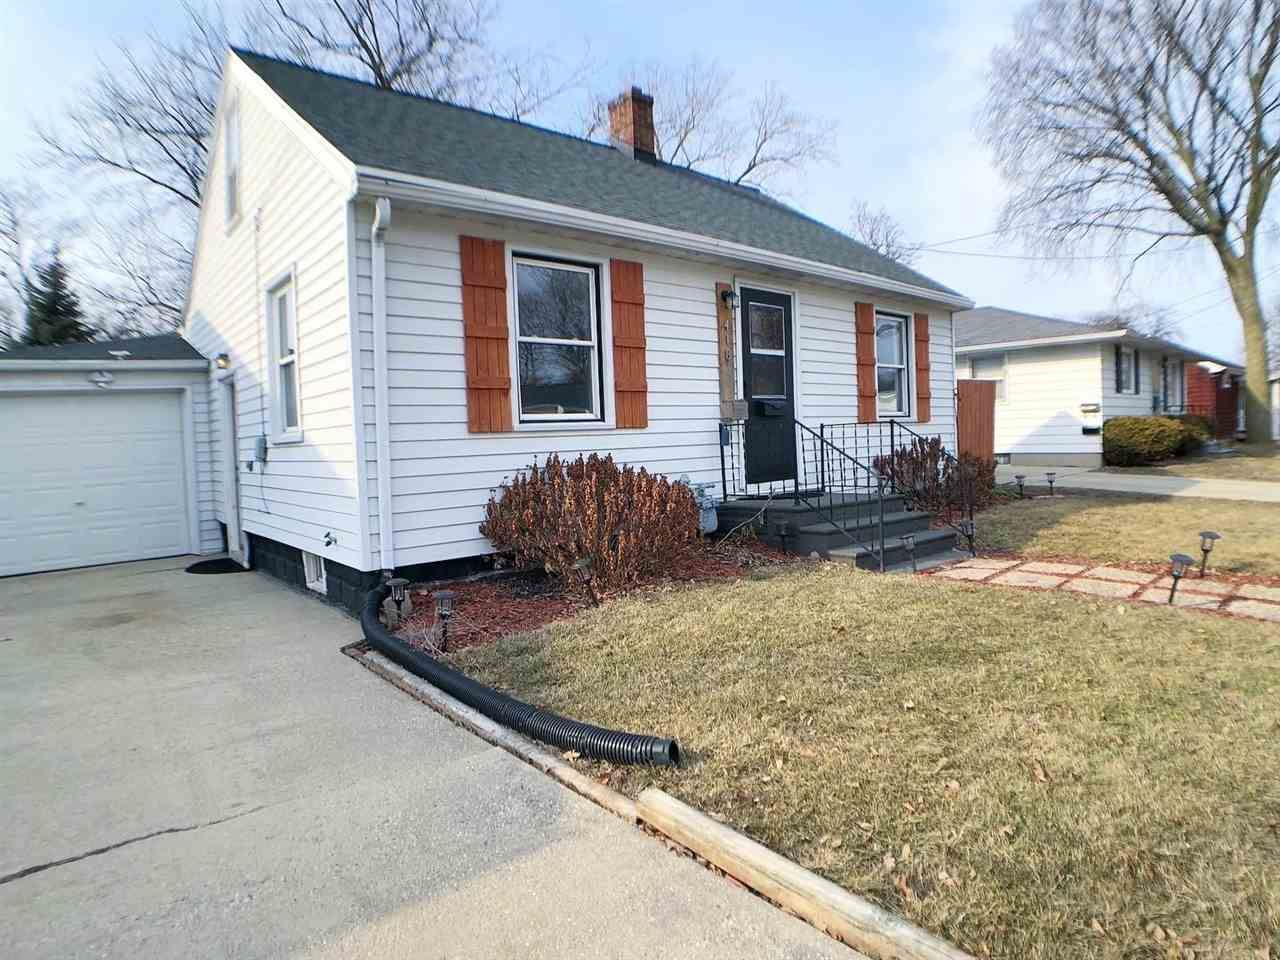 418 HARTUNG Street, Green Bay, WI 54302 - MLS#: 50236401